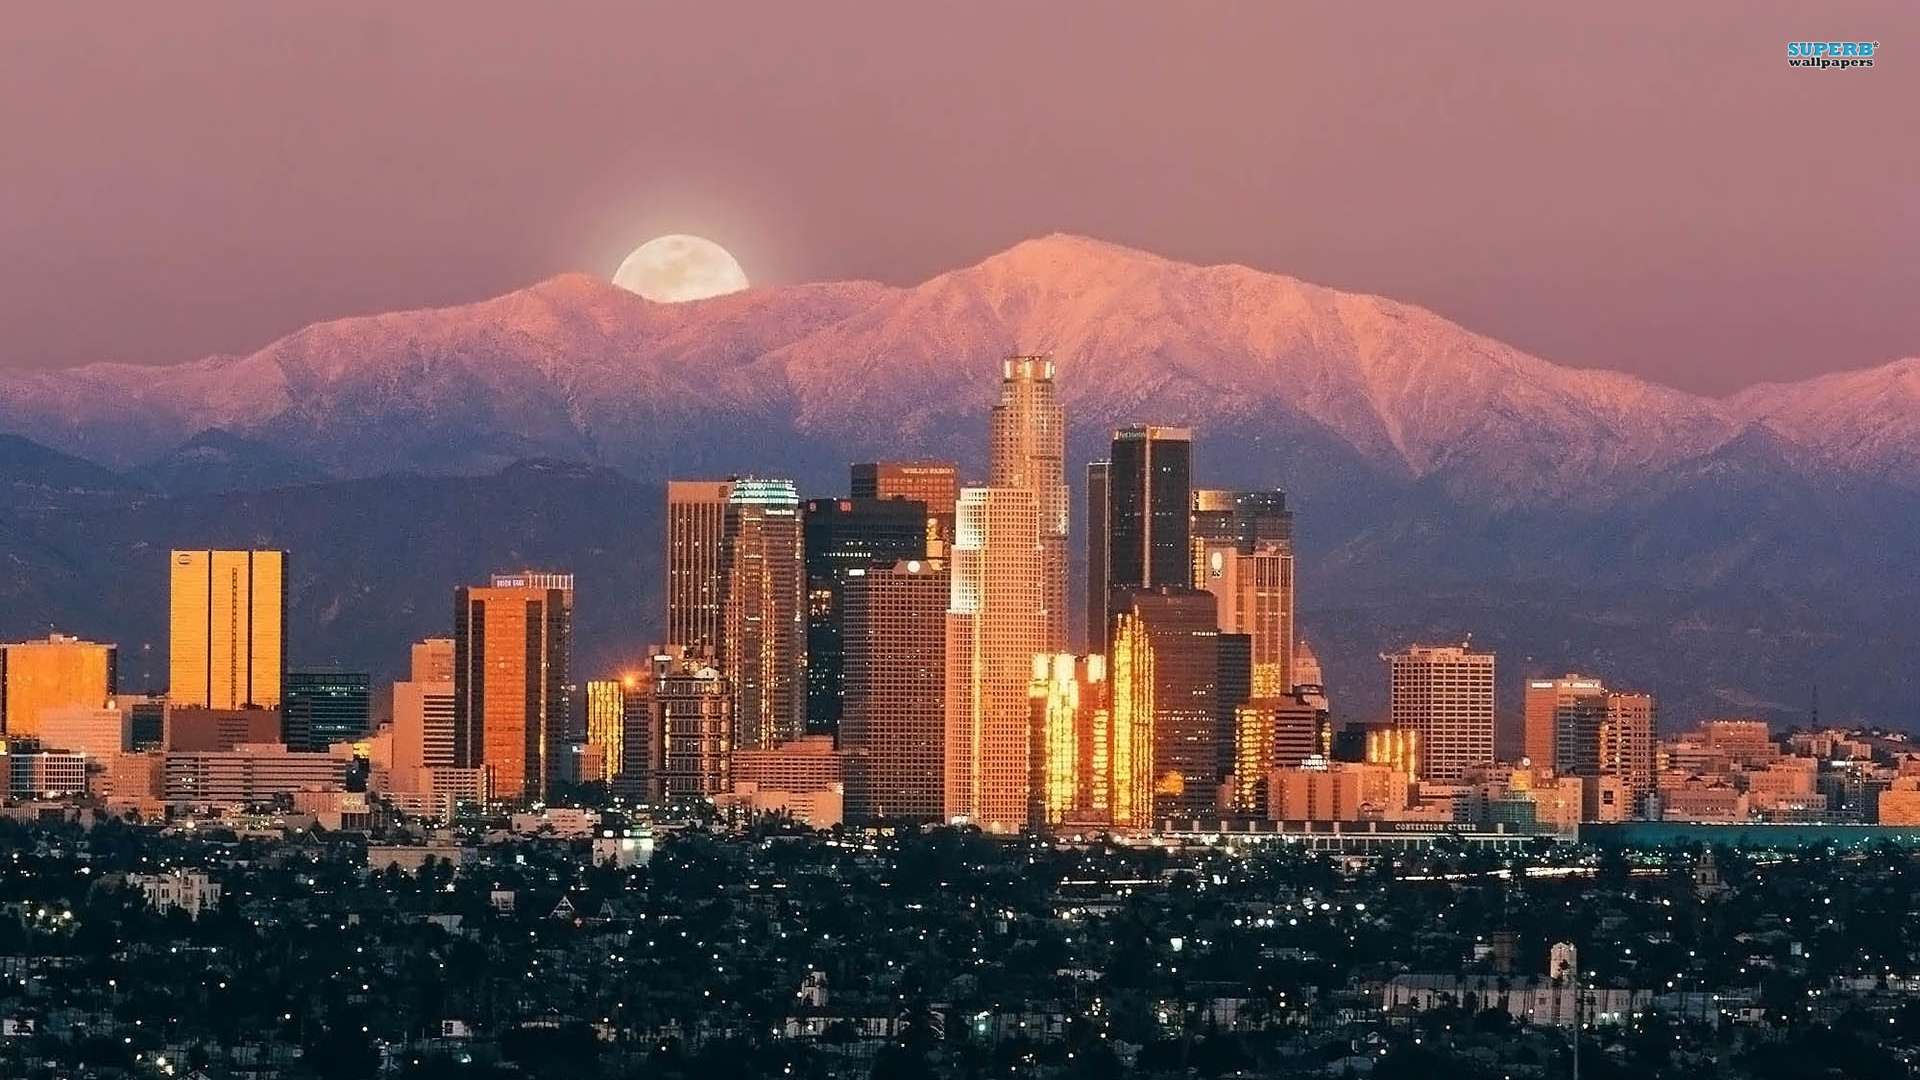 Los Angeles wallpaper 1920x1080